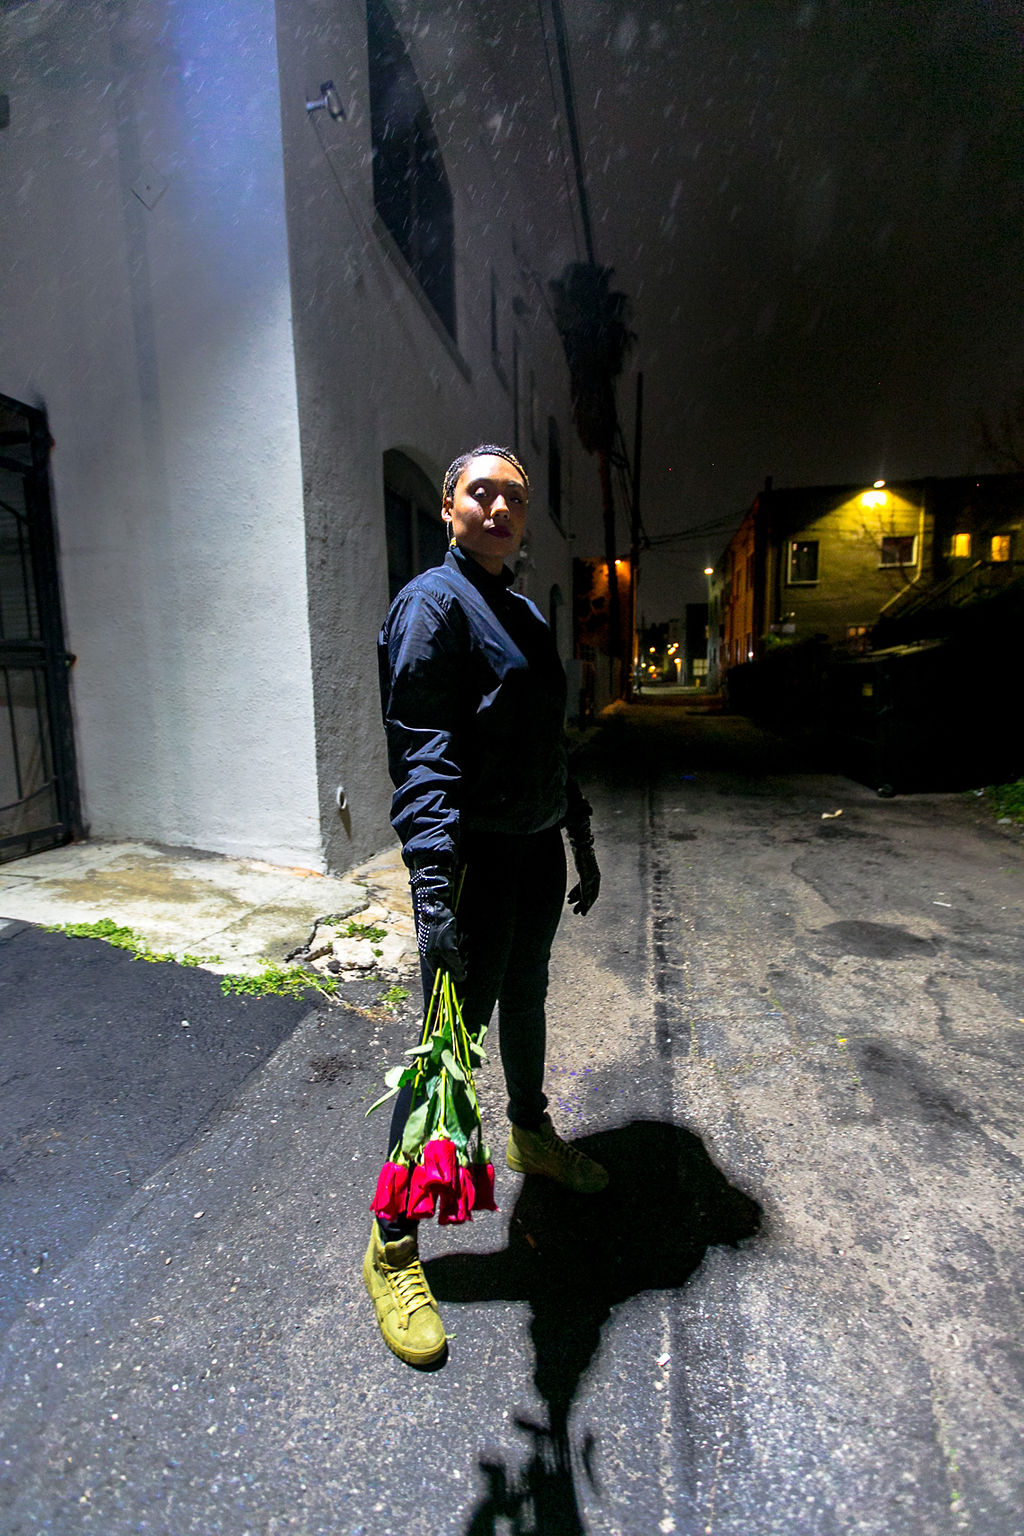 lcm-xmmtt-rsee-roses-wear who you are-night photography-black outfit